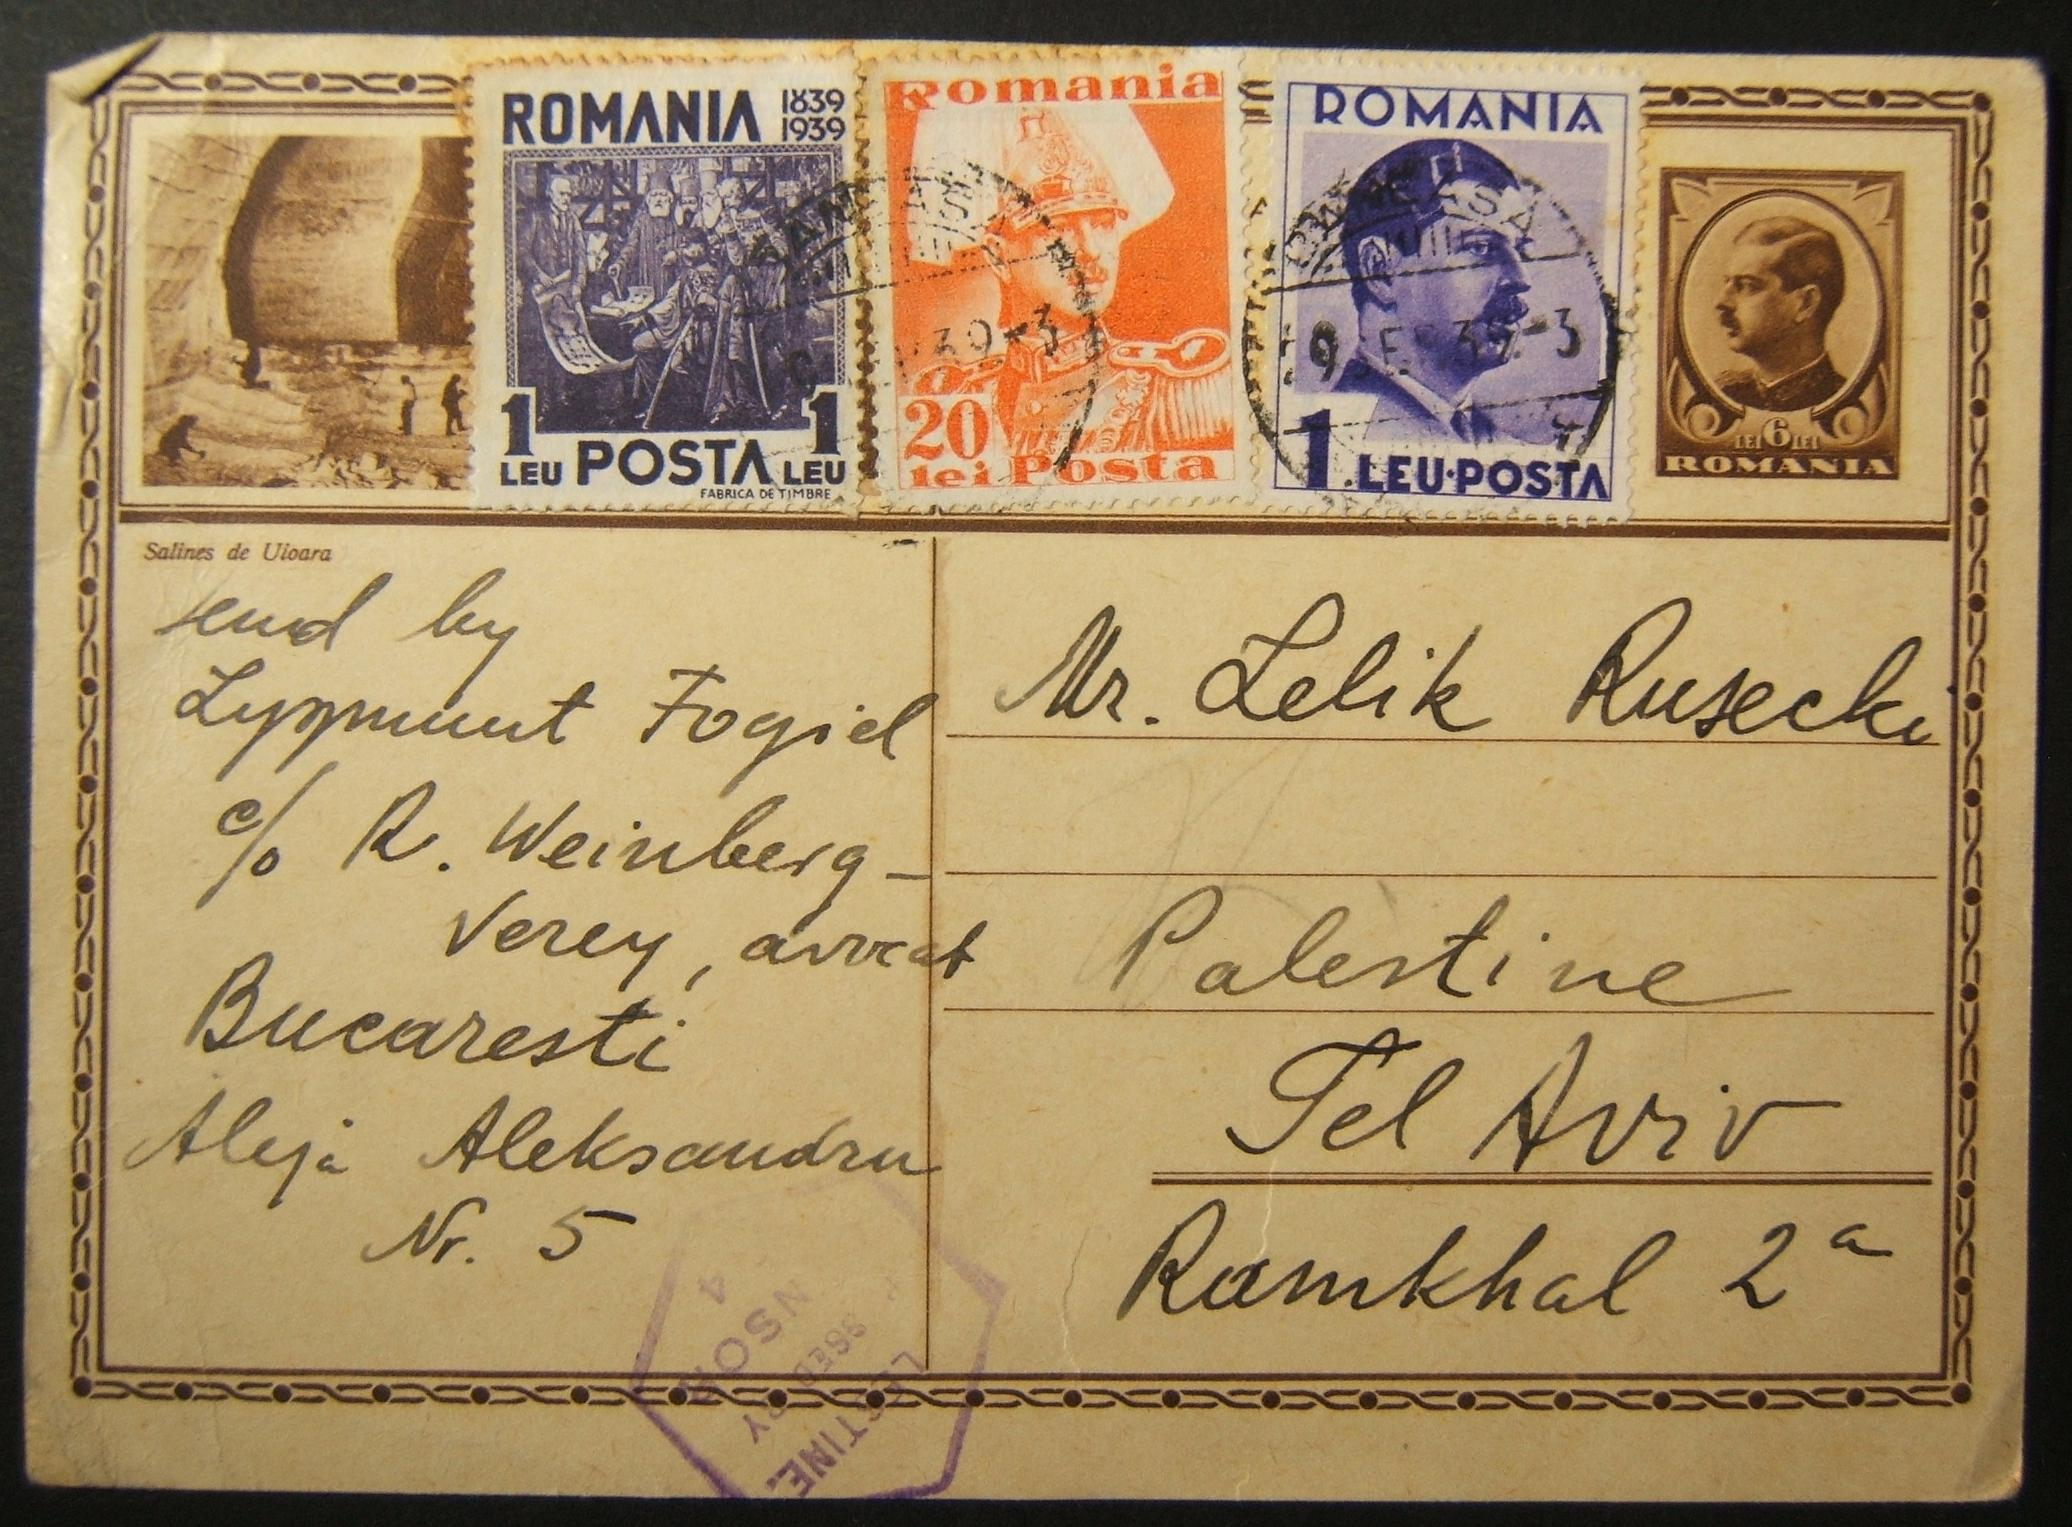 9/1939 WWII/Holocaust Warsaw Jewish refugee censored mail from Romania to TEL AVIV